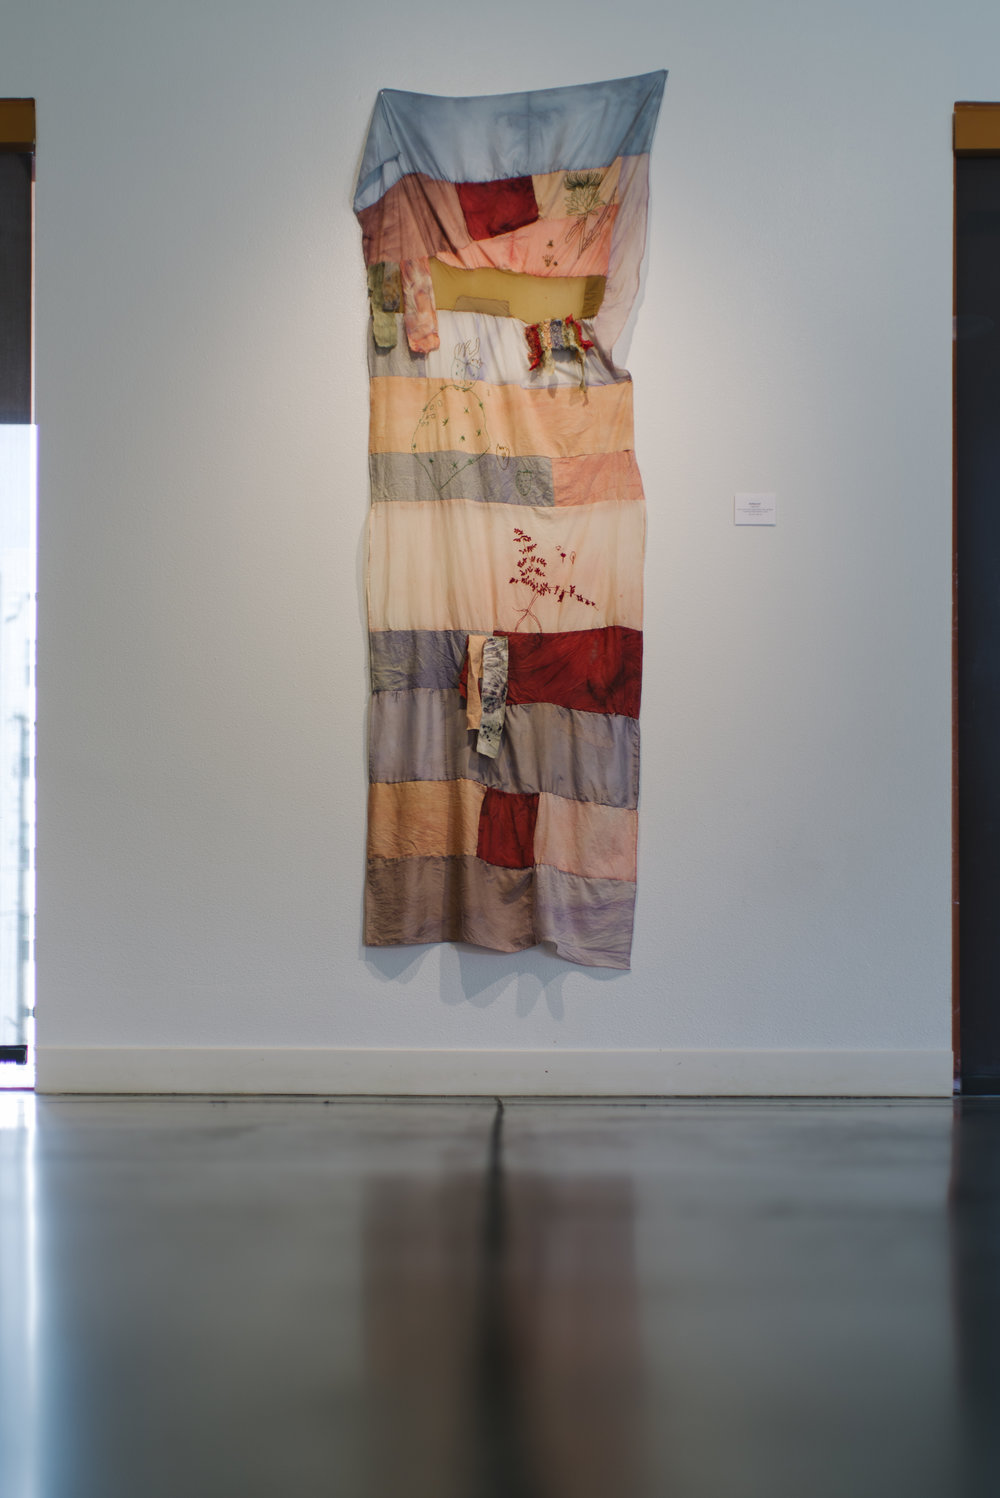 Mustang Jane Textil Herbarium /Herbario Textil Embroidery over patchwork with natural prints, Palo de Brasil, Cochineal, Black Beans, Leafs 90 cm x 237 cm 2018